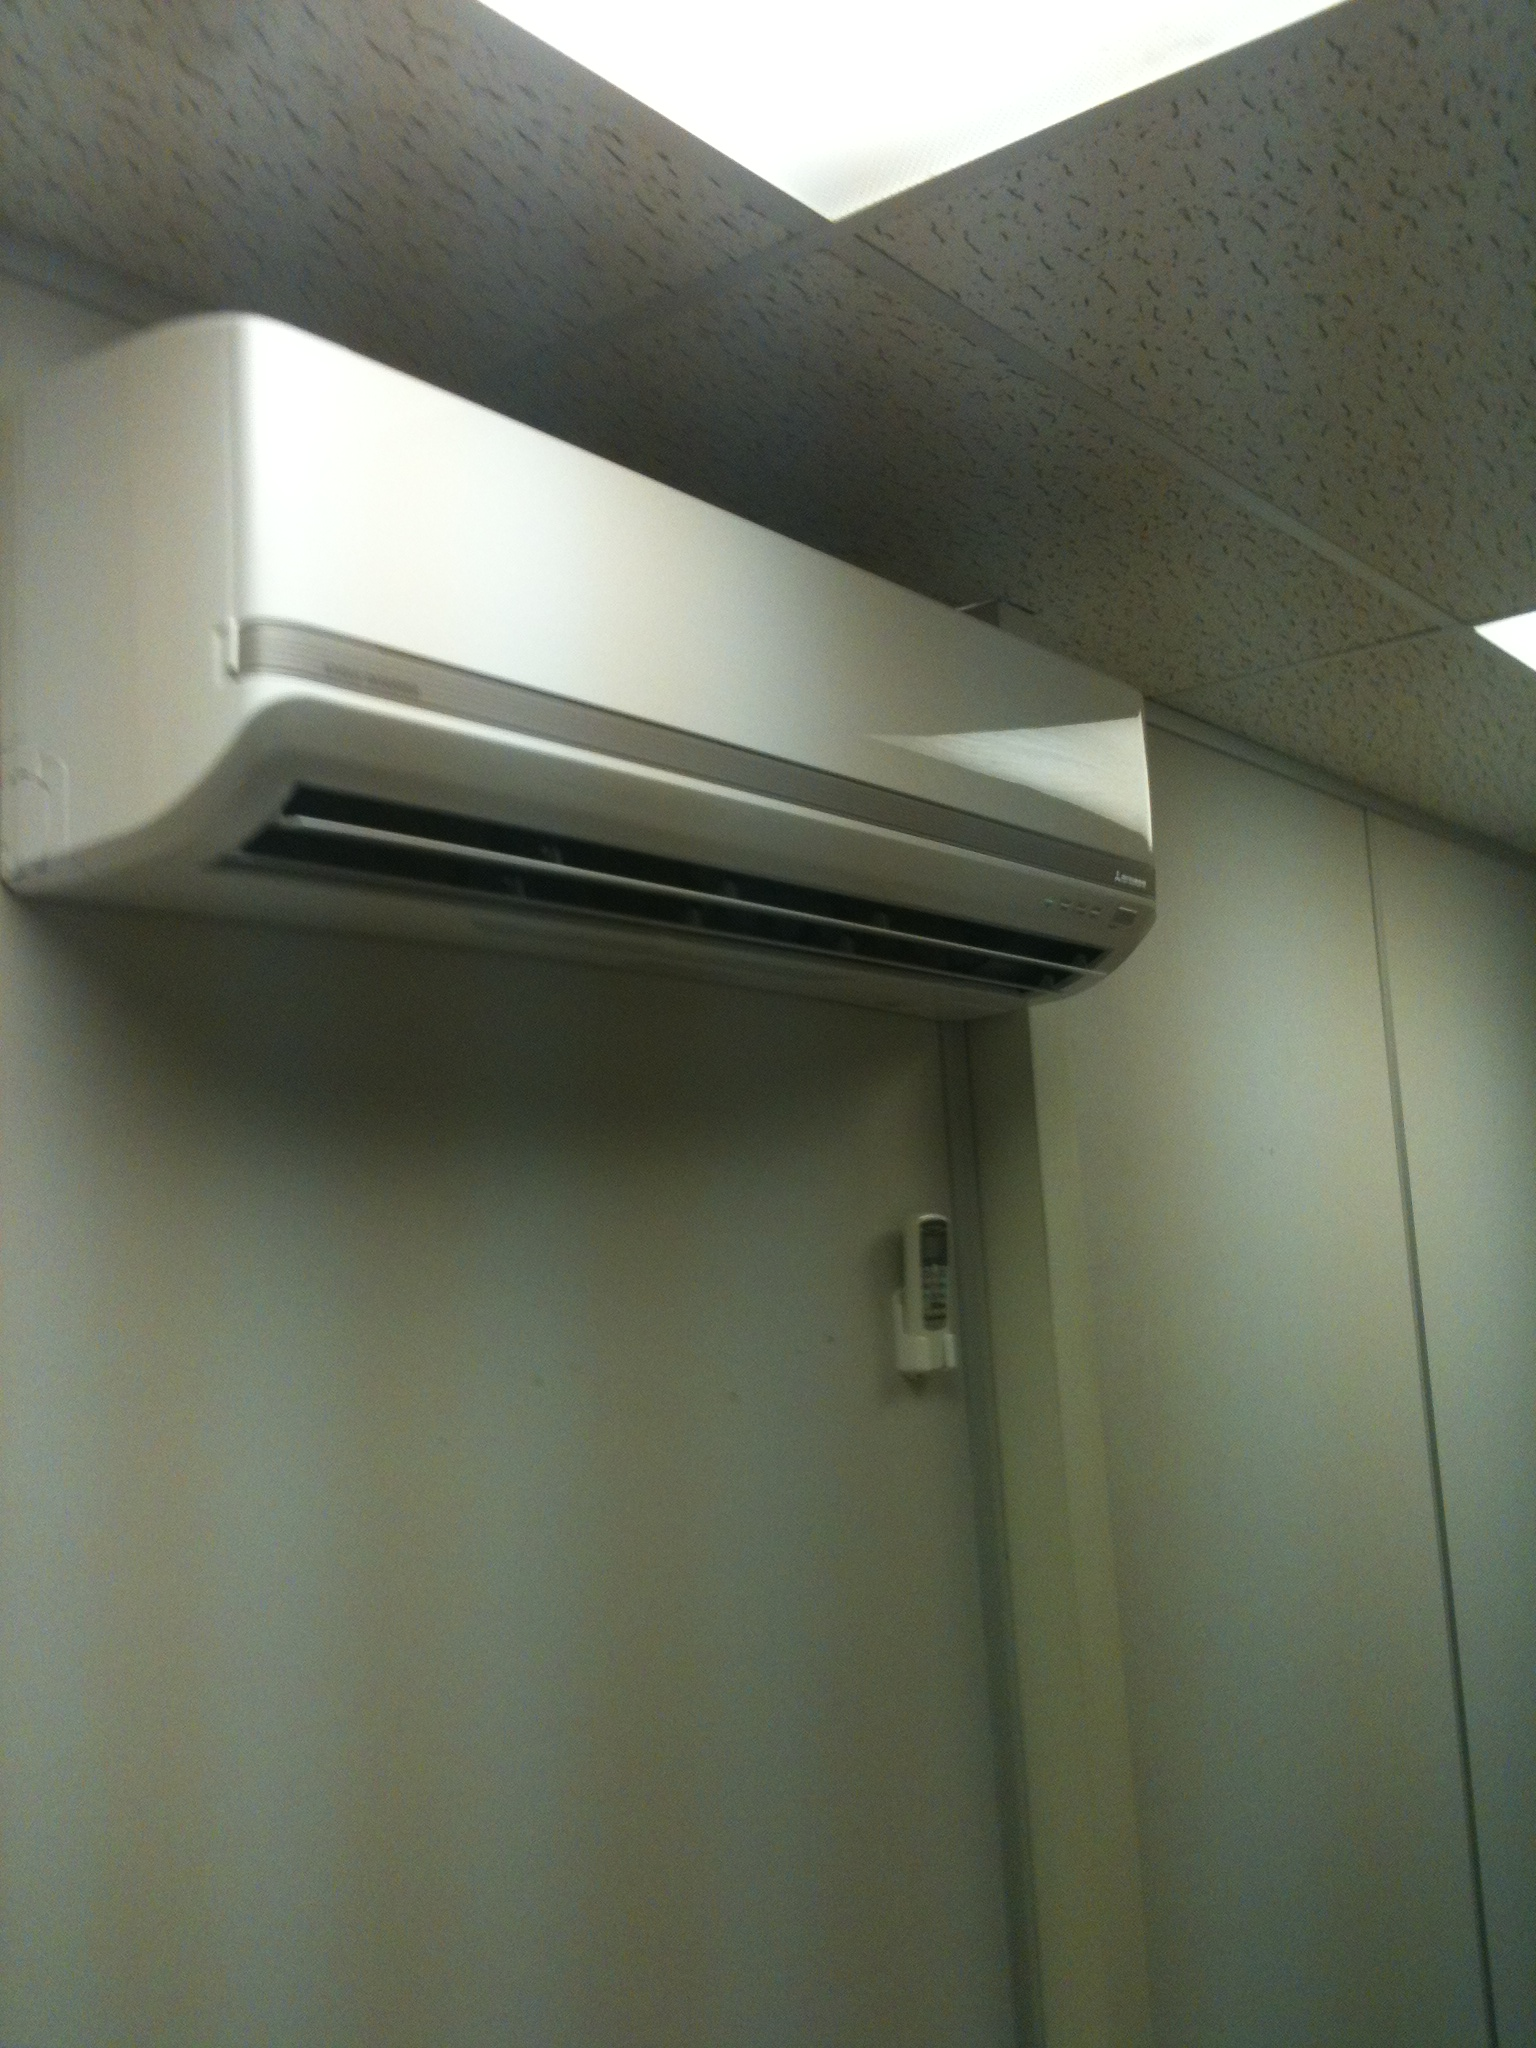 Completion of server room air conditioning project for Fibrefab #6B7556